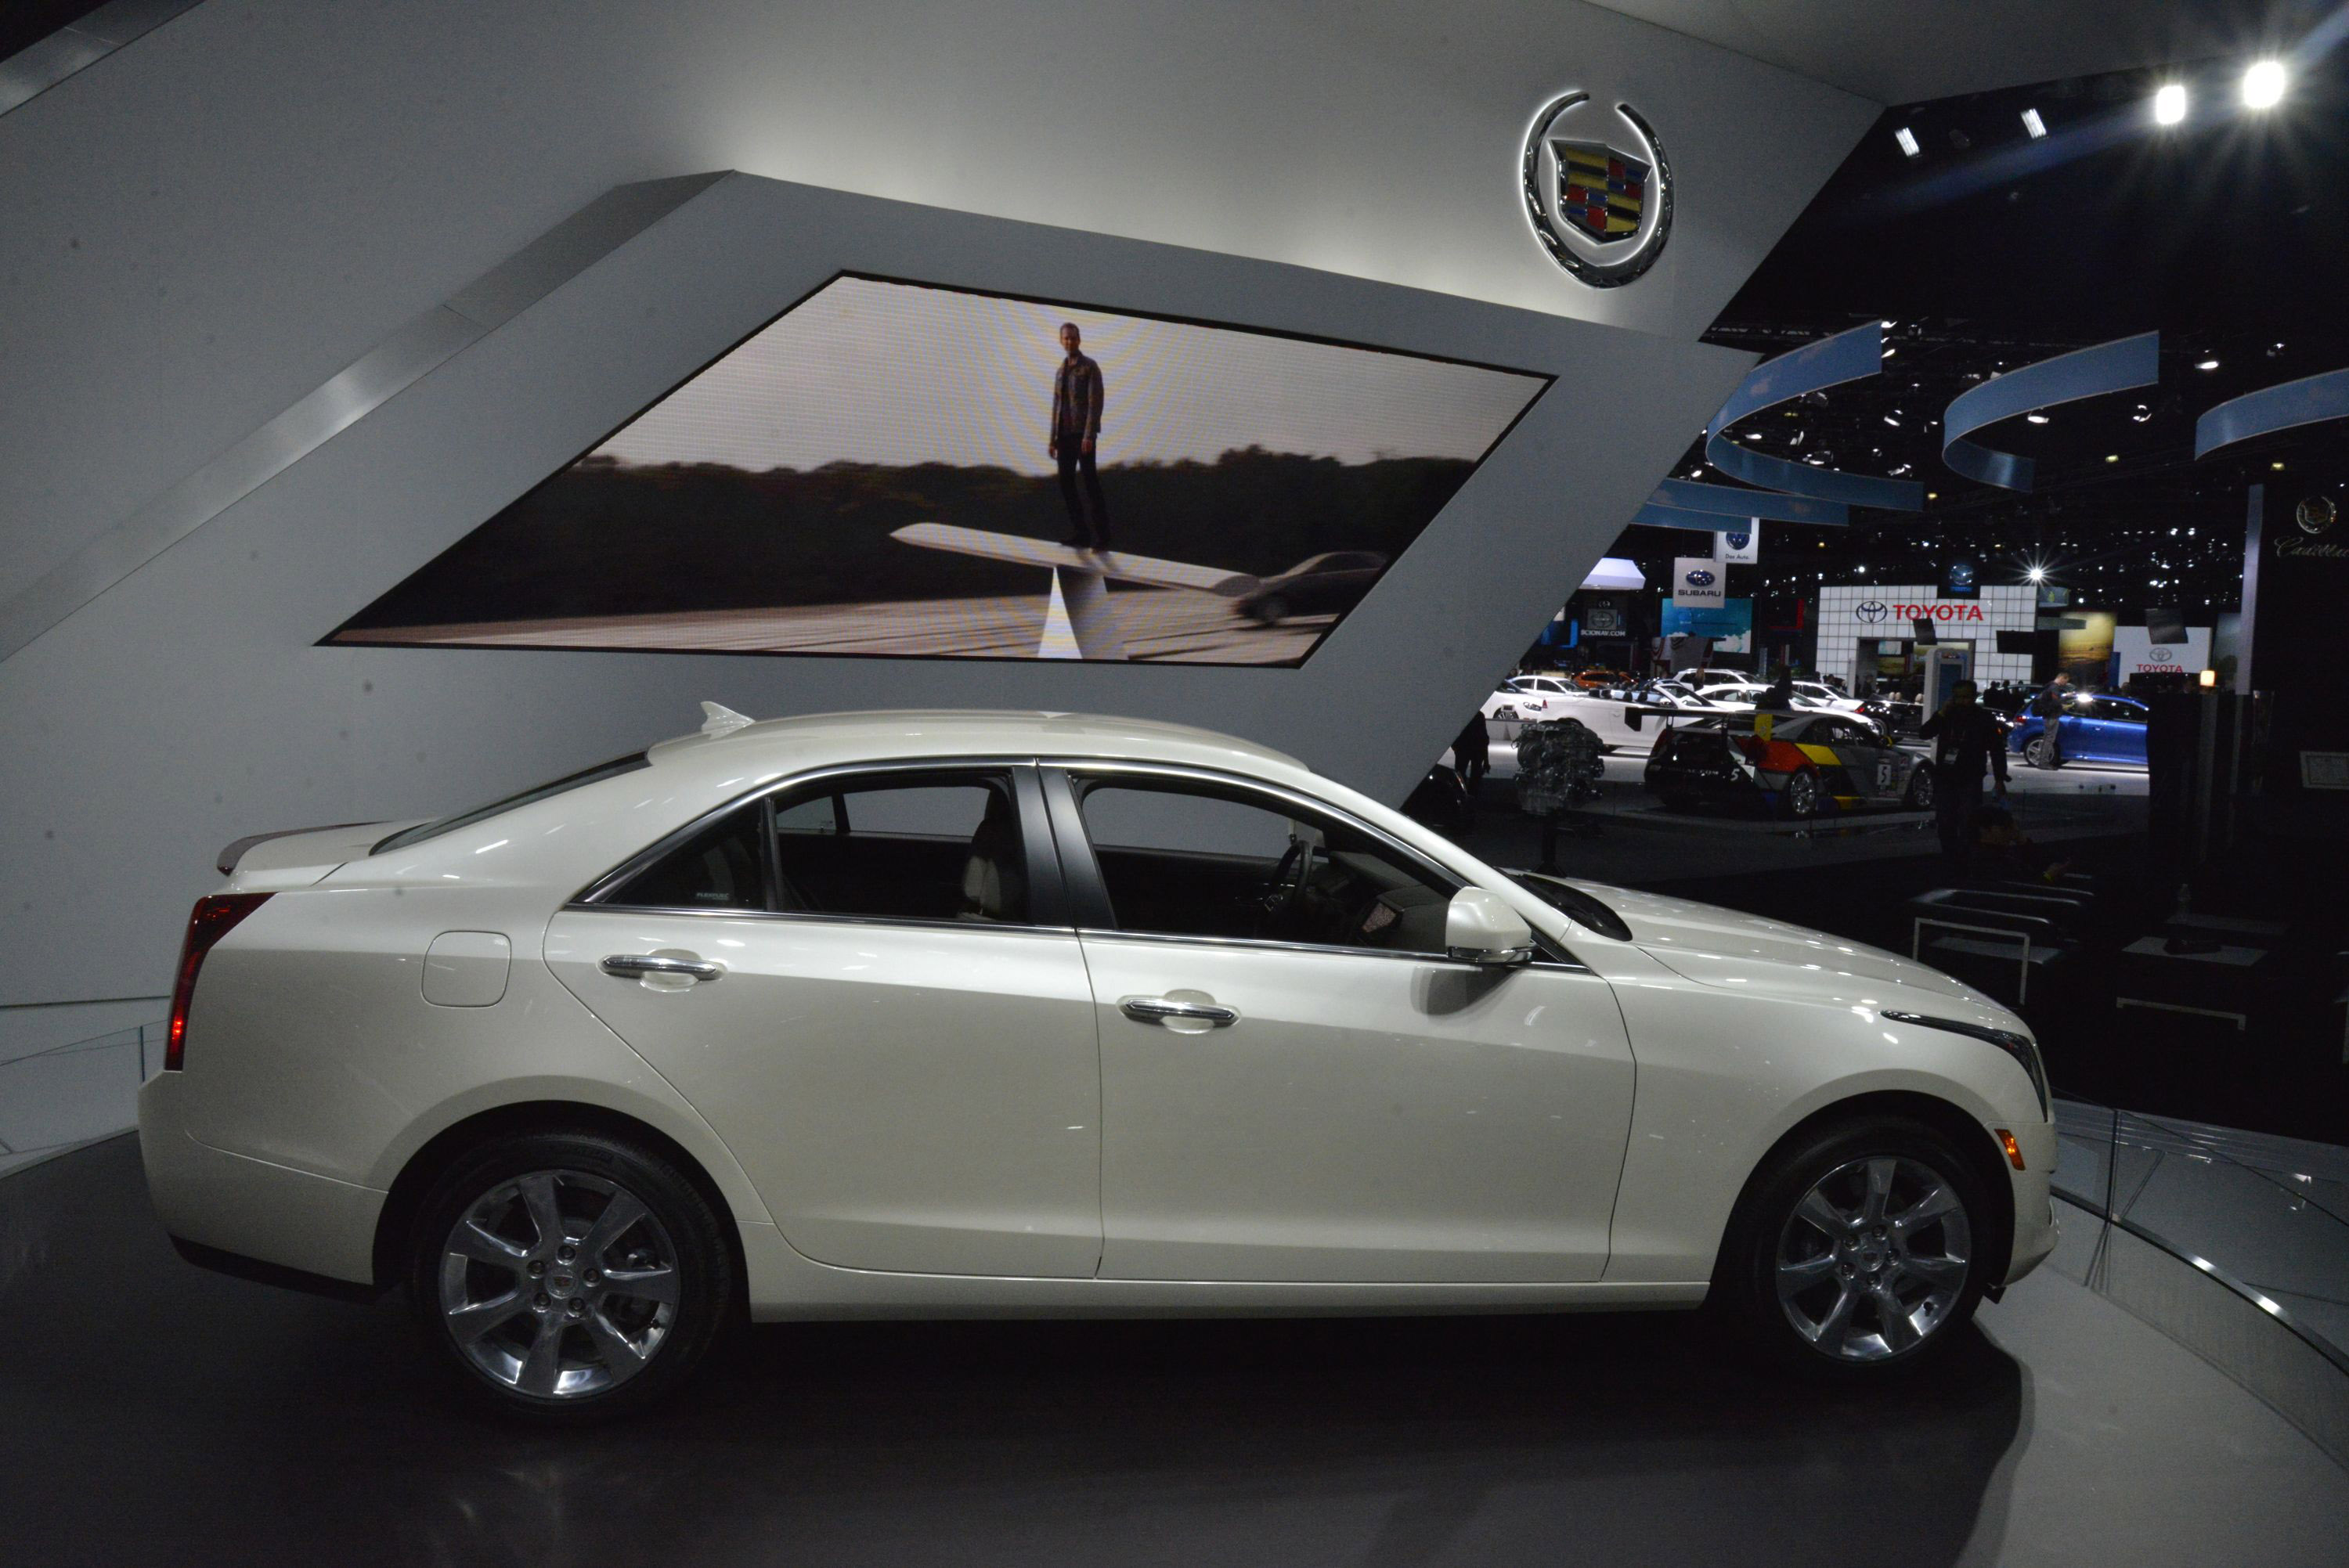 Cadillac Ats Los Angeles 2012 Picture 78215